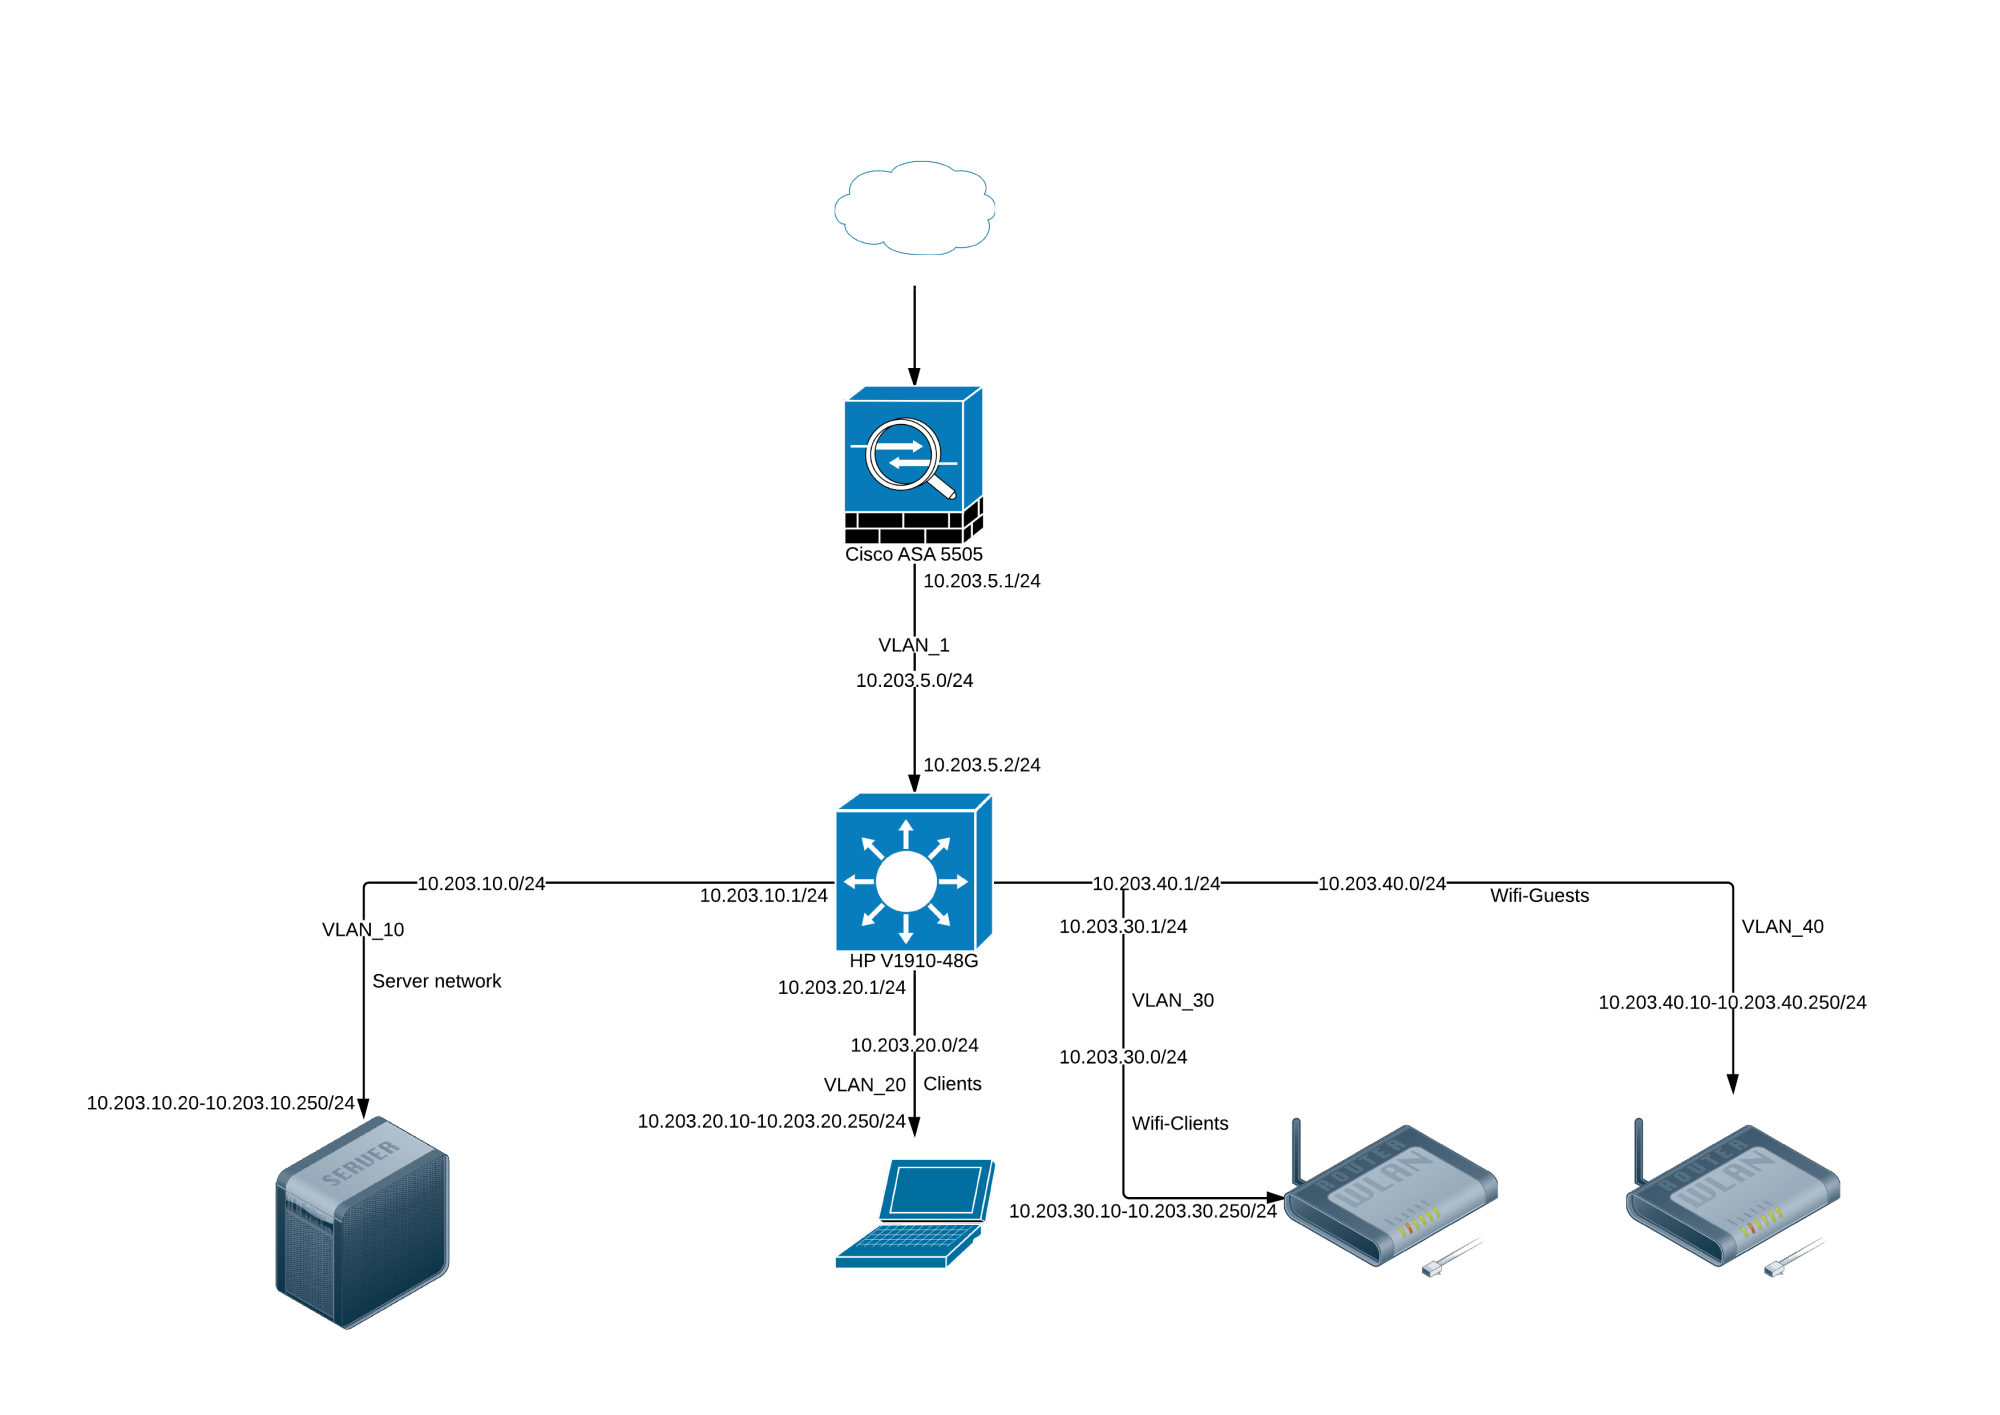 hight resolution of my network diagram network diagram of a firewall connected to a hp v1910 48g switch vlans